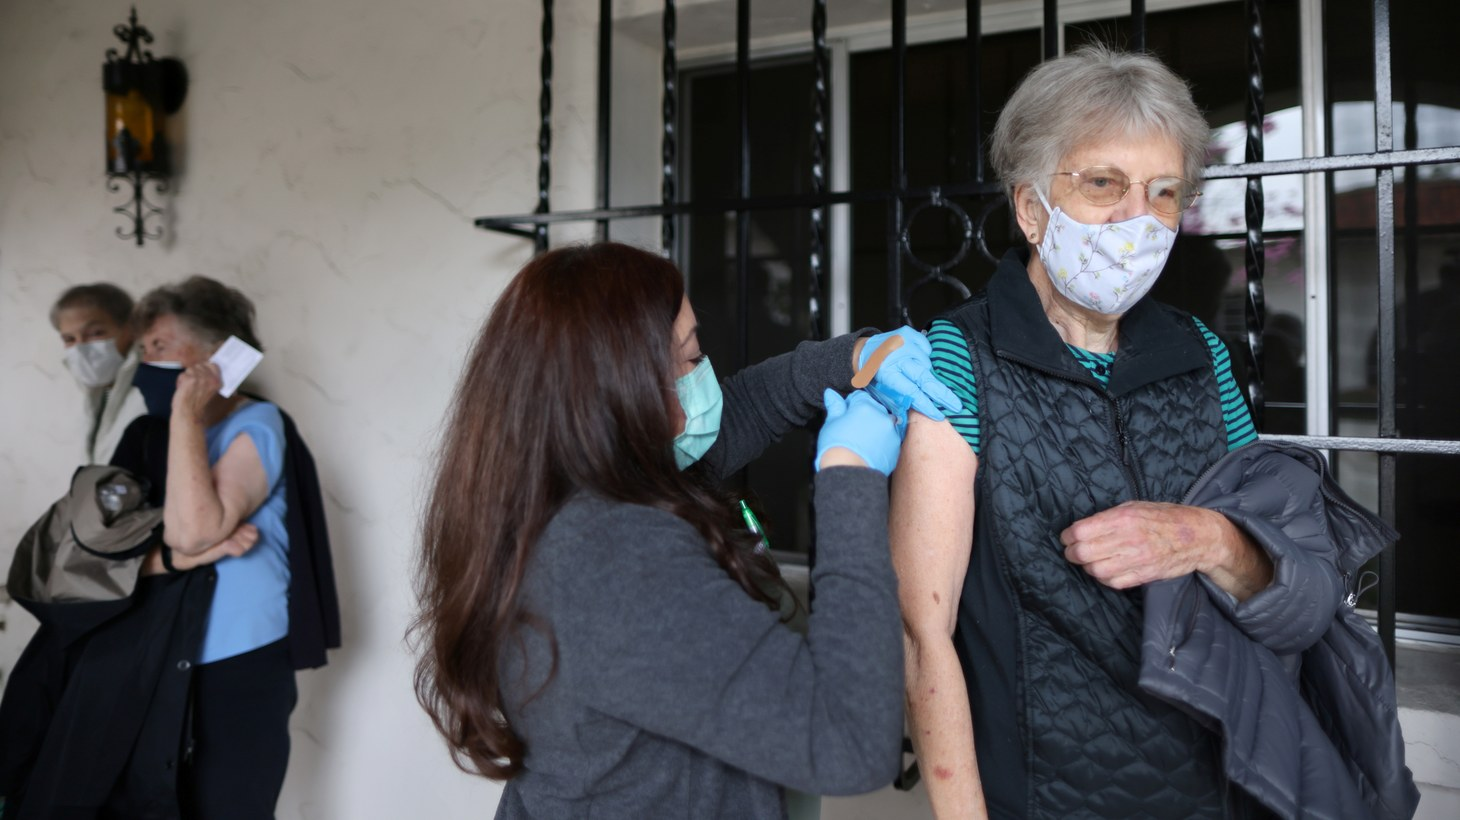 Sister Linda Snow, 80, receives a coronavirus disease (COVID-19) vaccine at a vaccination drive for retired nuns at the Sisters of St. Joseph of Carondelet independent living center in Los Angeles, California, U.S., March 3, 2021.